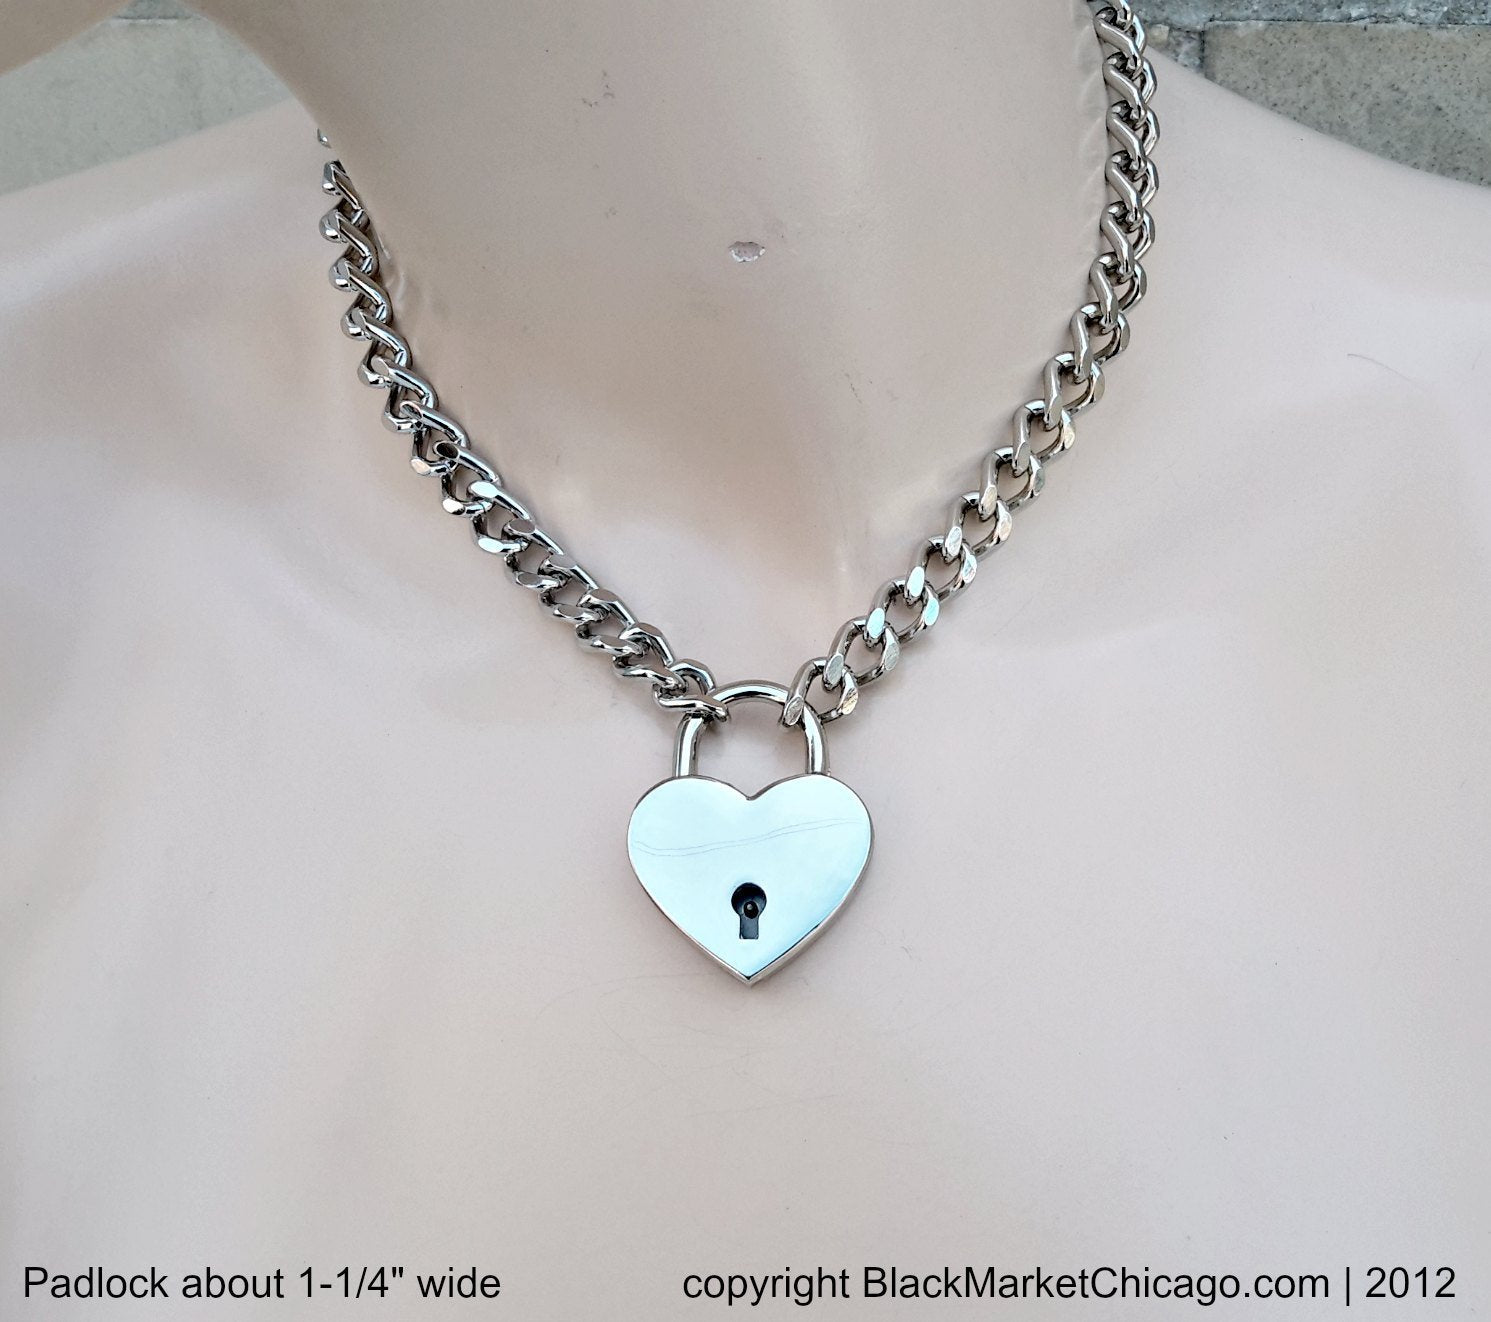 Locking Collar Submissive 316L Stainless Steel Chain and LARGE Nickel Heart Padlock BDSM Slave Necklace